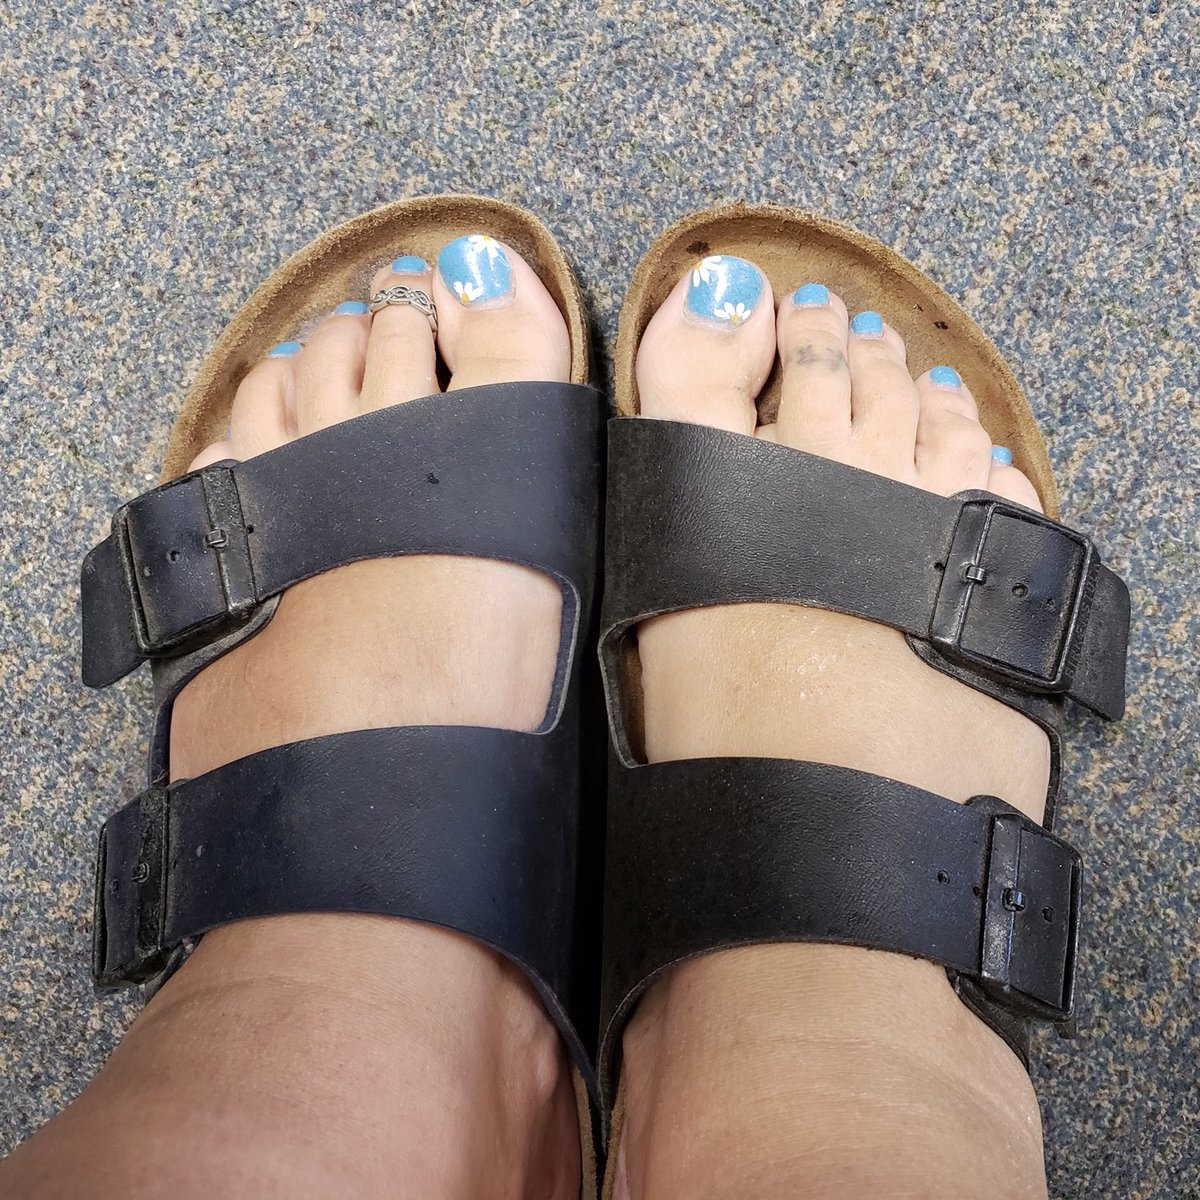 """test Twitter Media - """"So... you know you need more sleep when you get to work and realize you have two different coloured Birks on"""" ~ Eryn Hinds  No judgment from us, Eryn. Happy to see you're getting good use out of your Blue AND your Black #Birkenstock sandals! 😉  #gradyphotocontest #ptbo https://t.co/iOa0EPBjEV"""